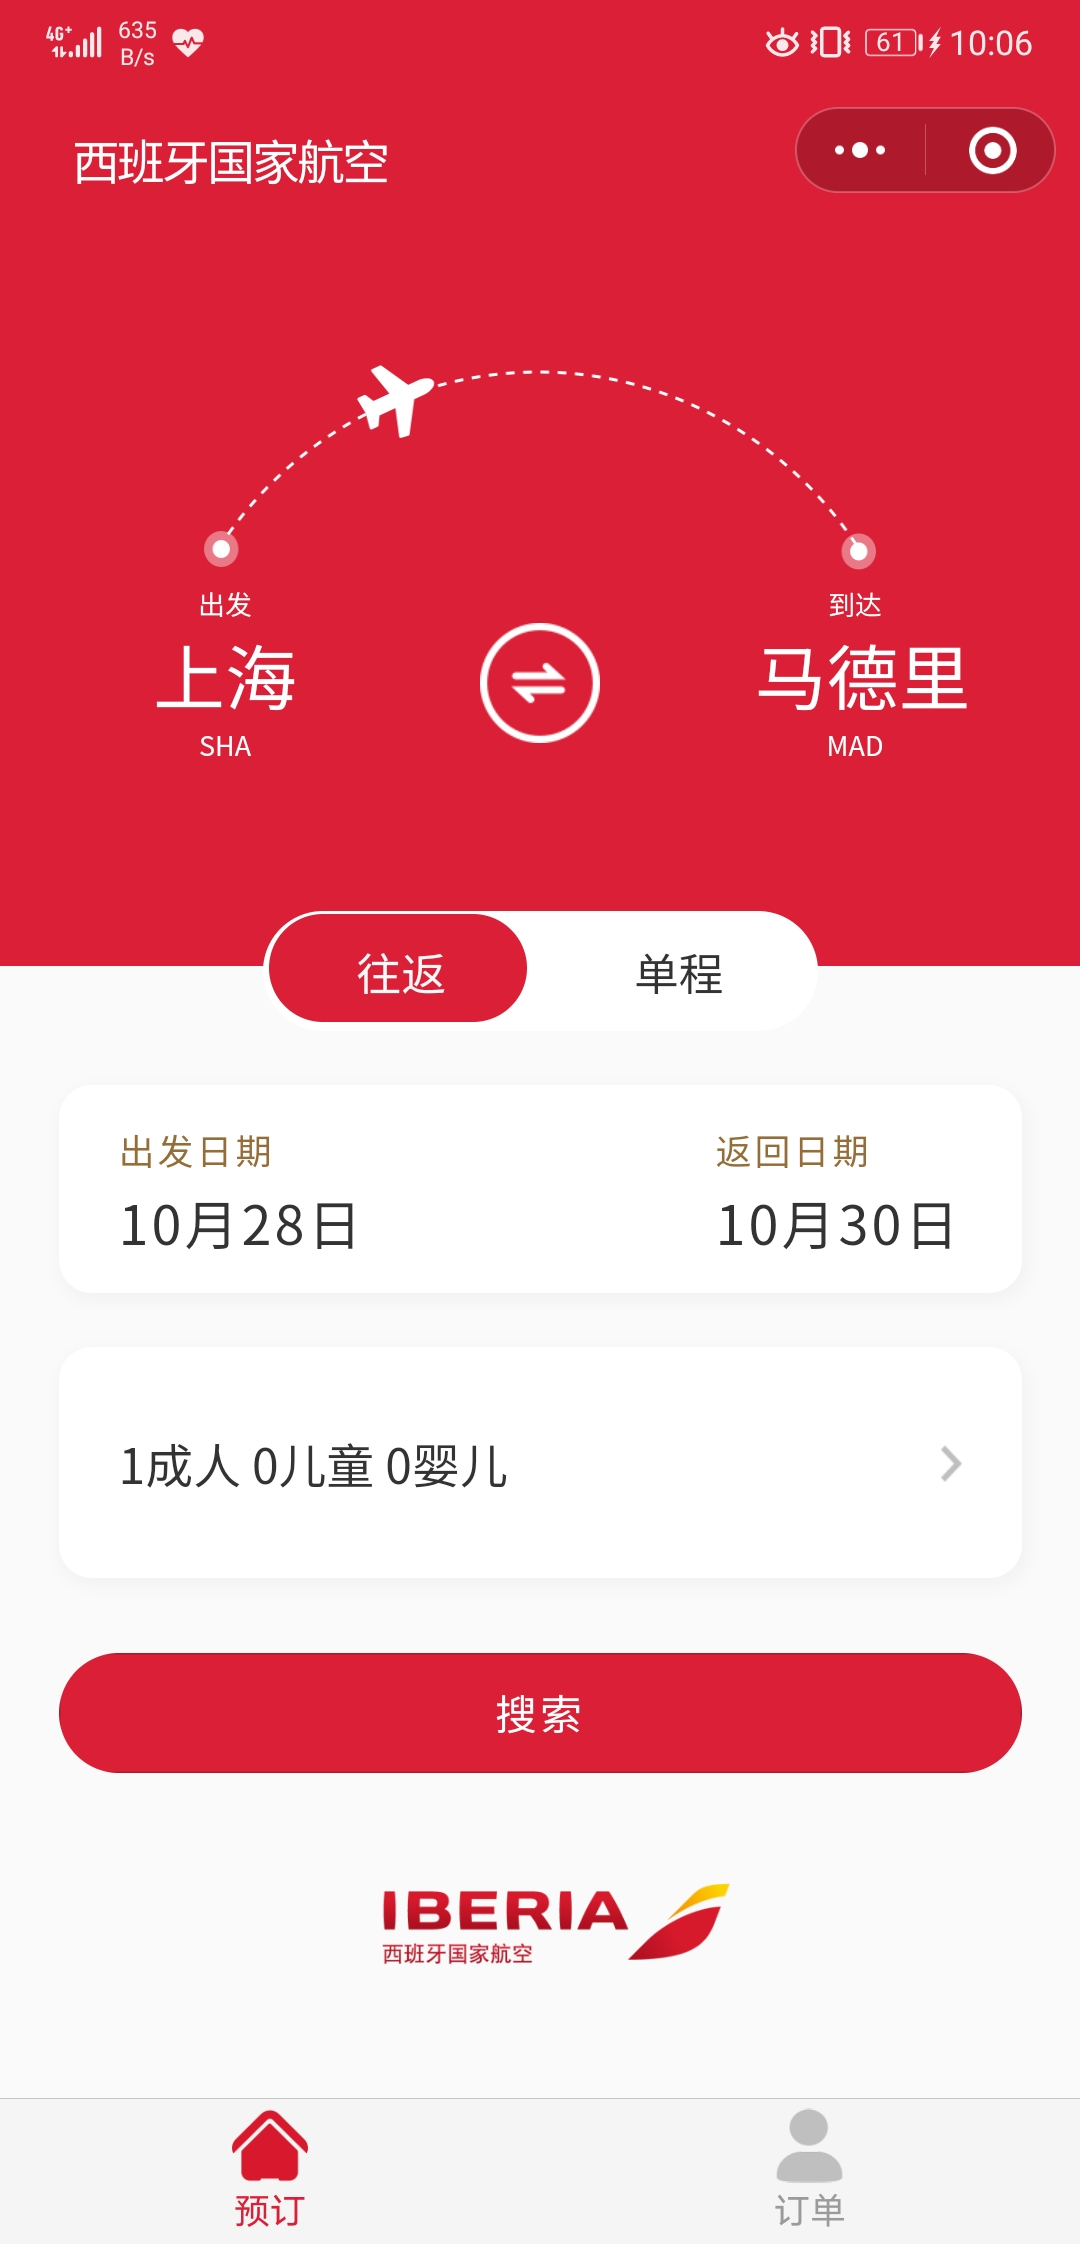 IBERIA ticketing WeChat mini-programme